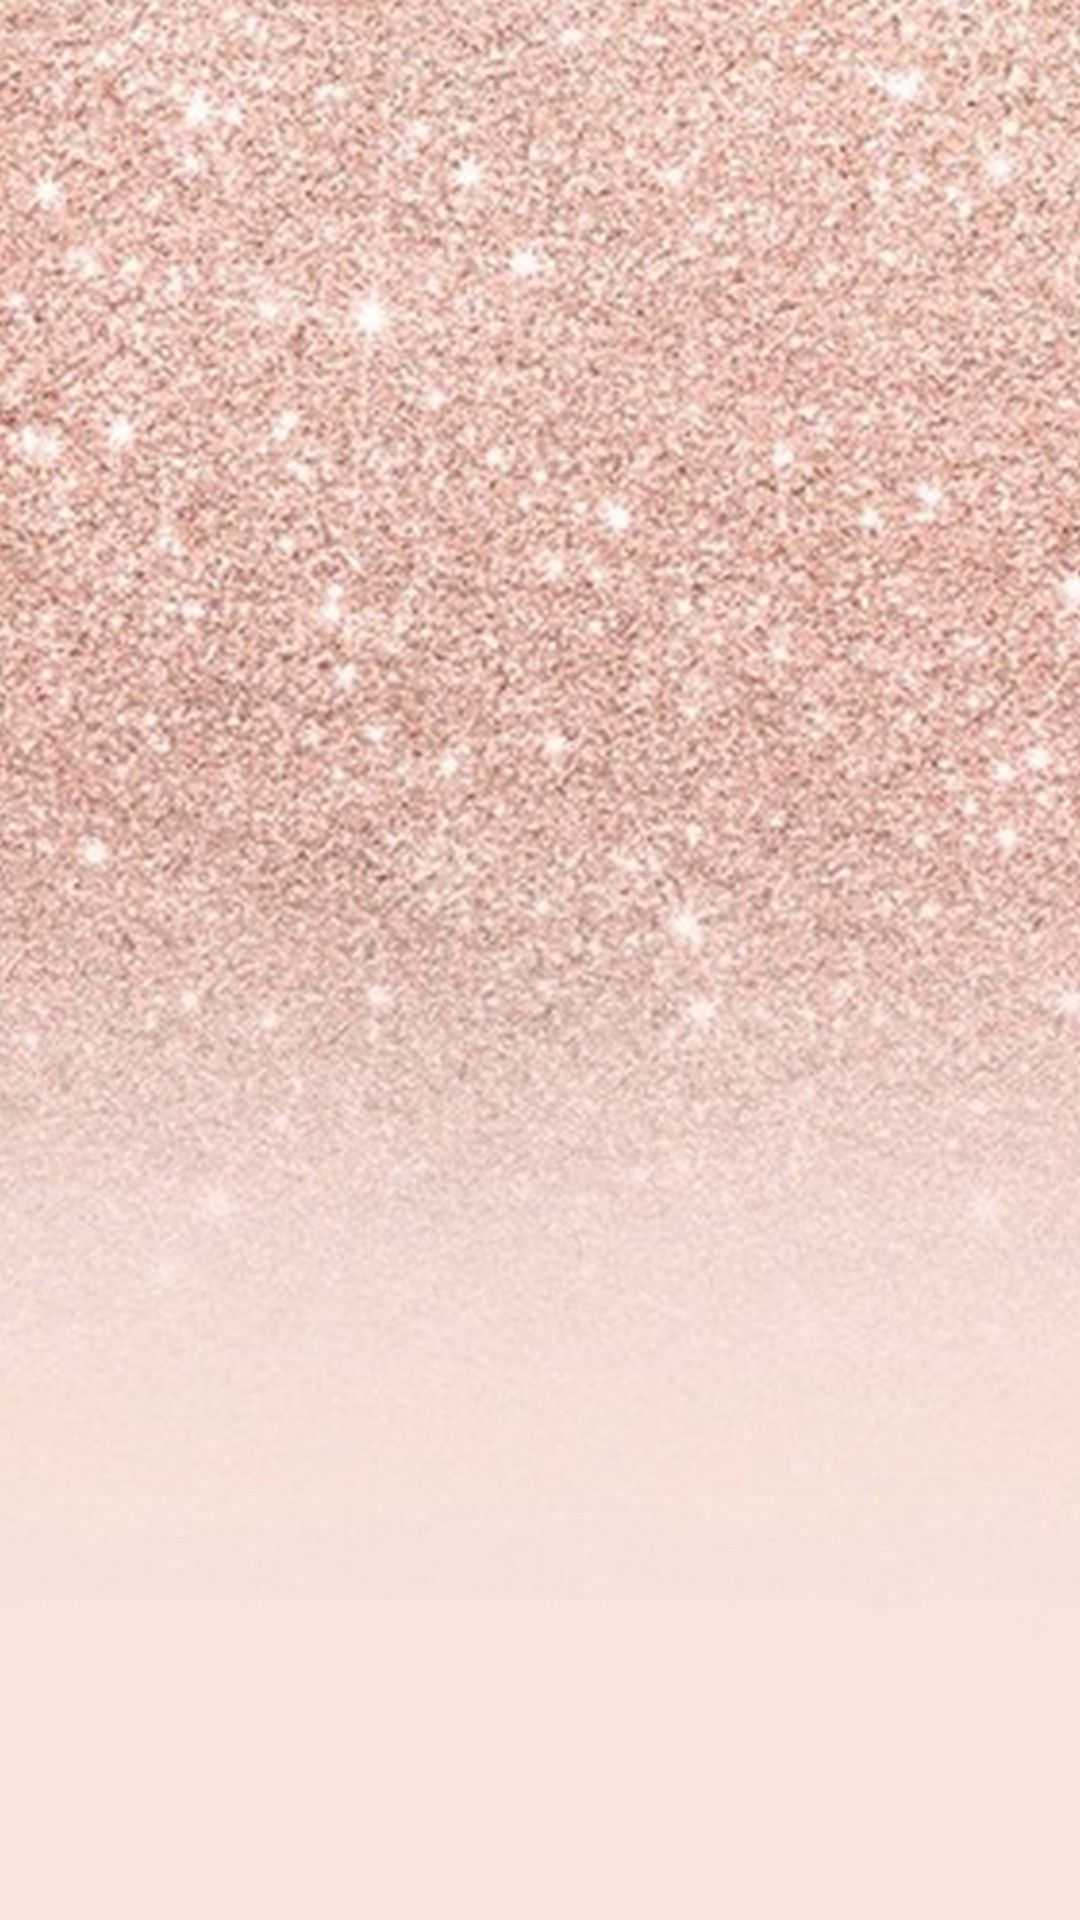 Pin by zenzone on iphone wallpapers in 2019 backsplash - Rose gold background for iphone ...